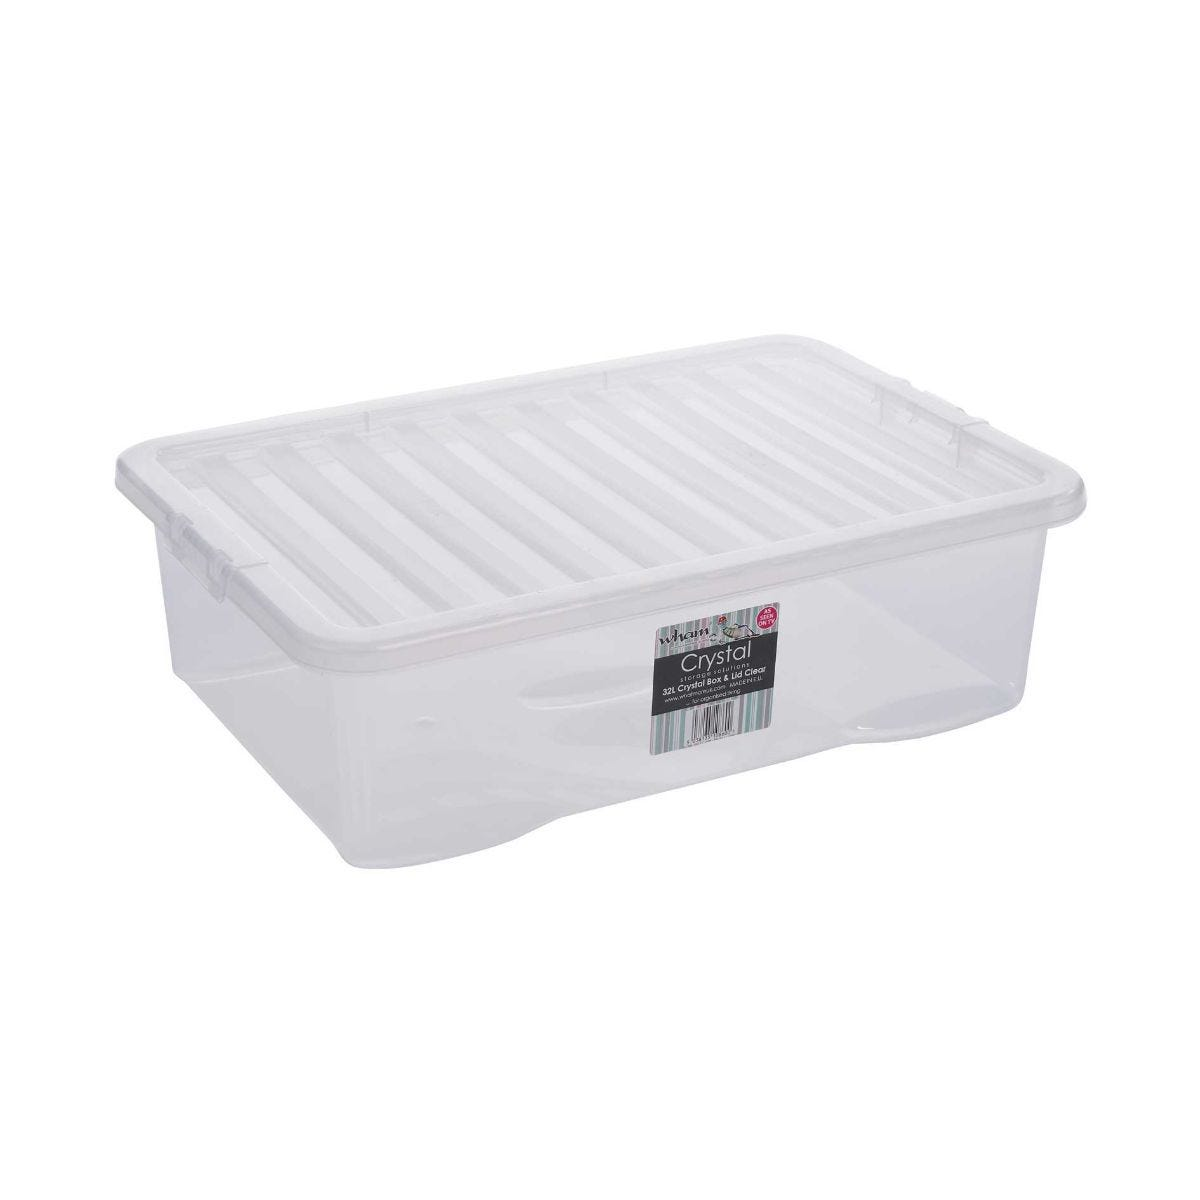 Image of 32 Litre Crystal Storage Box and Lid Single Unit